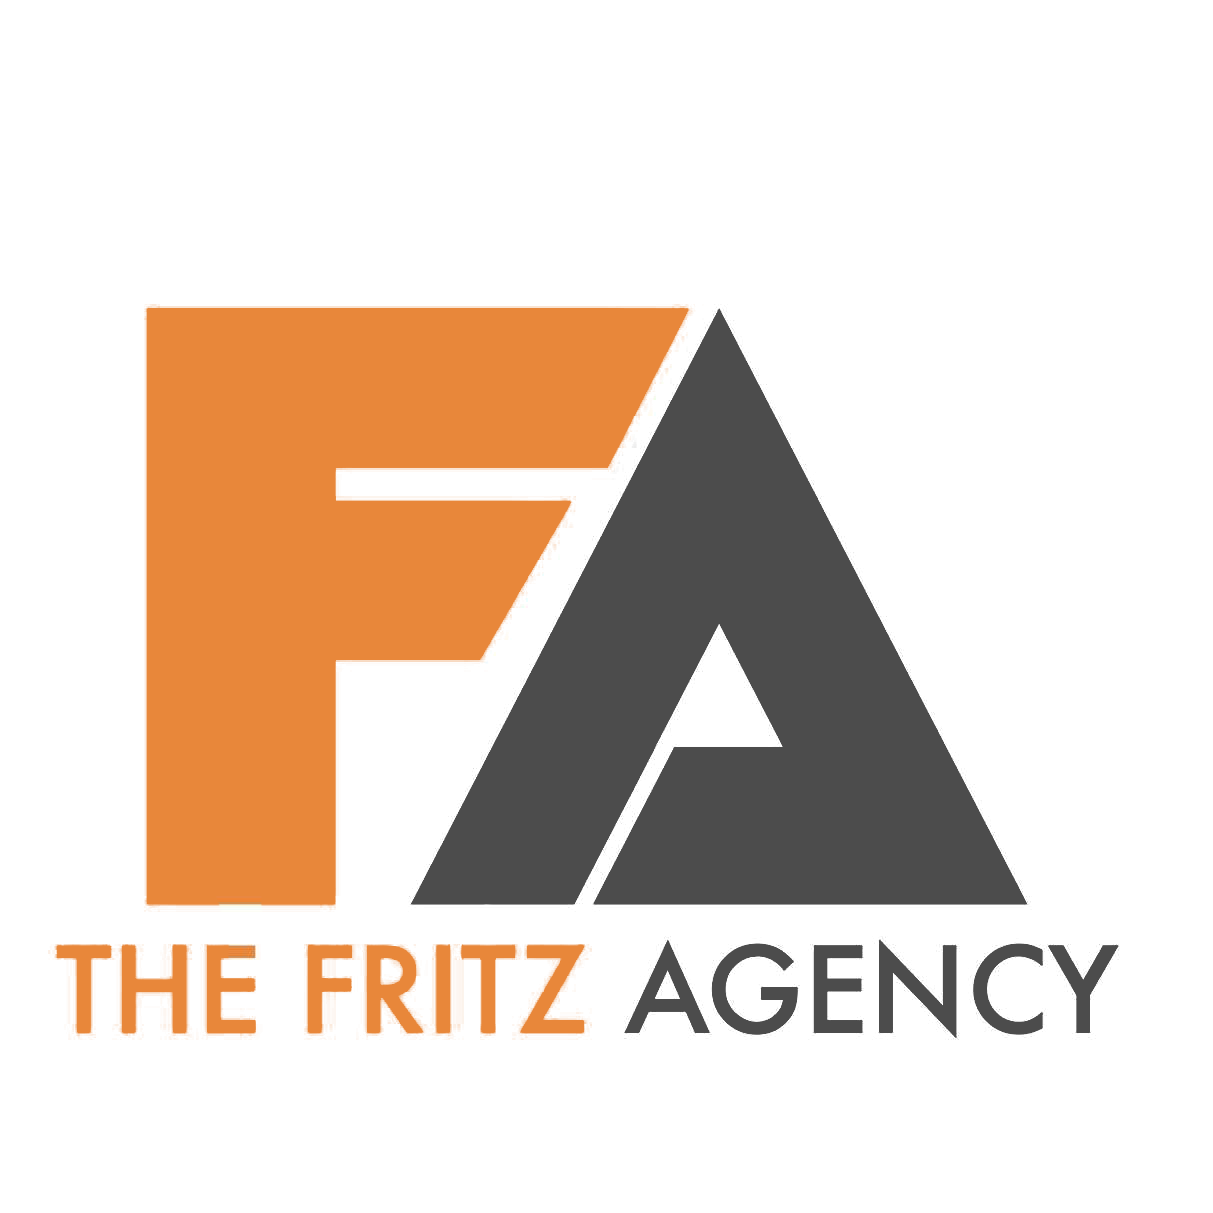 Fritz Advertising Agency